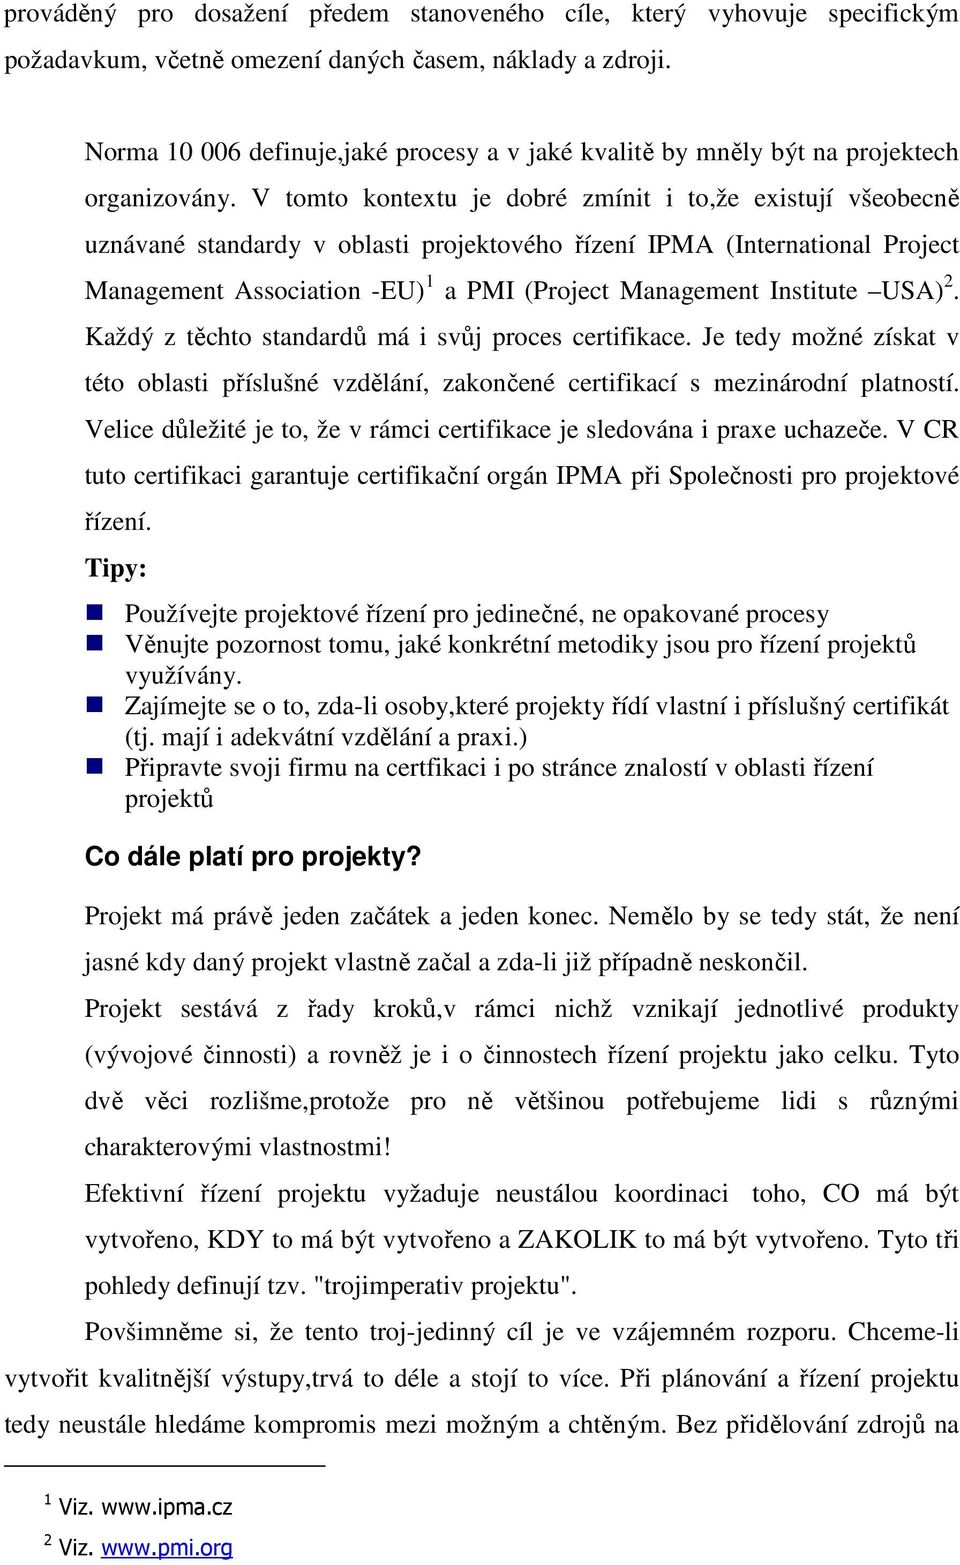 V tomto kontextu je dobré zmínit i to,že existují všeobecně uznávané standardy v oblasti projektového řízení IPMA (International Project Management Association -EU) 1 a PMI (Project Management